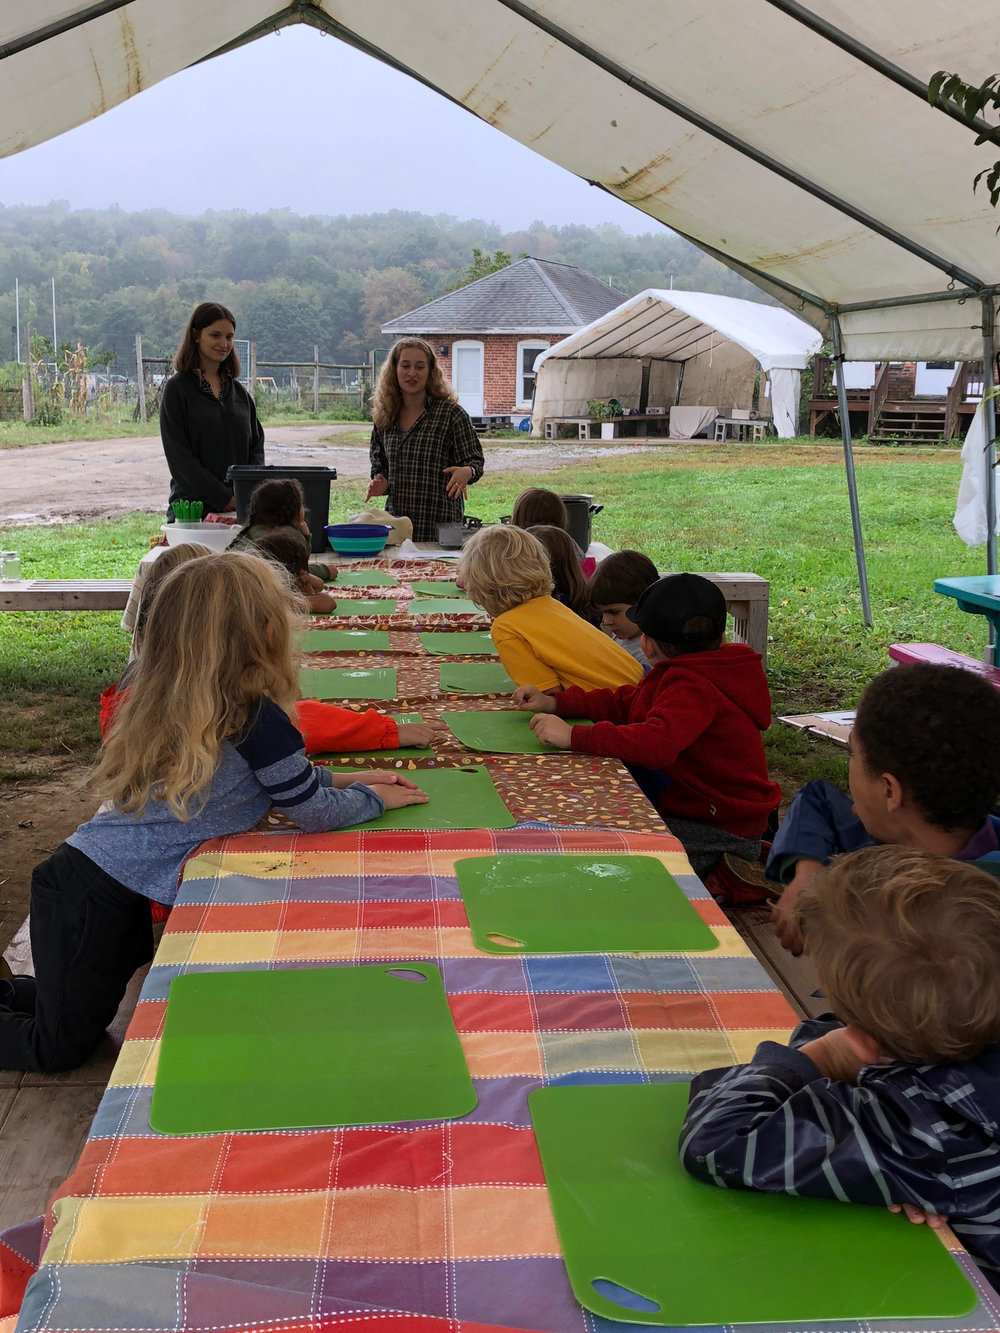 Lindsey in the plaid shirt teaching kids at a workshop!